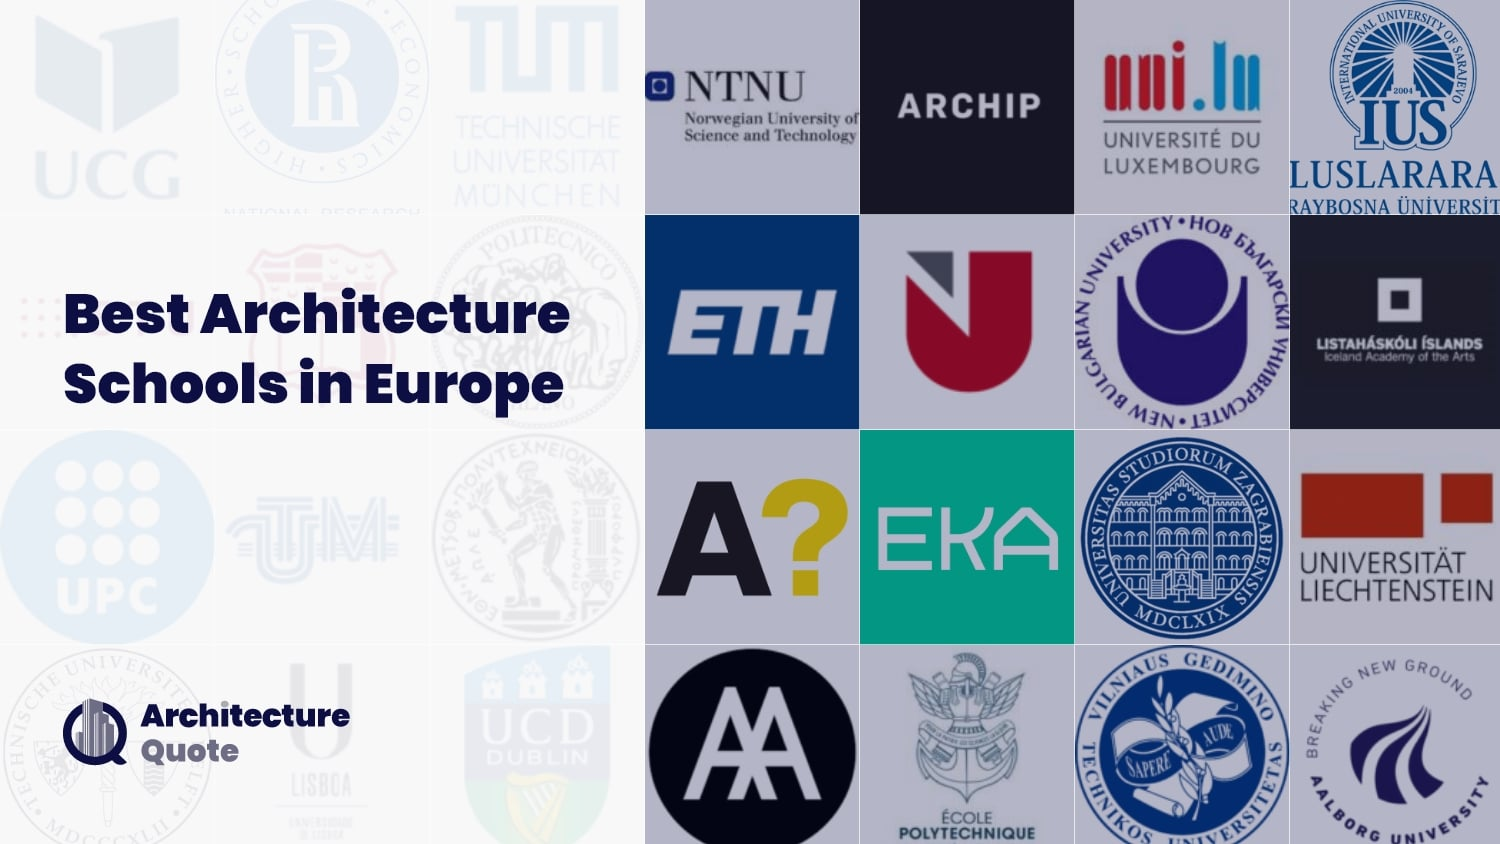 The Best Architecture Schools in Europe